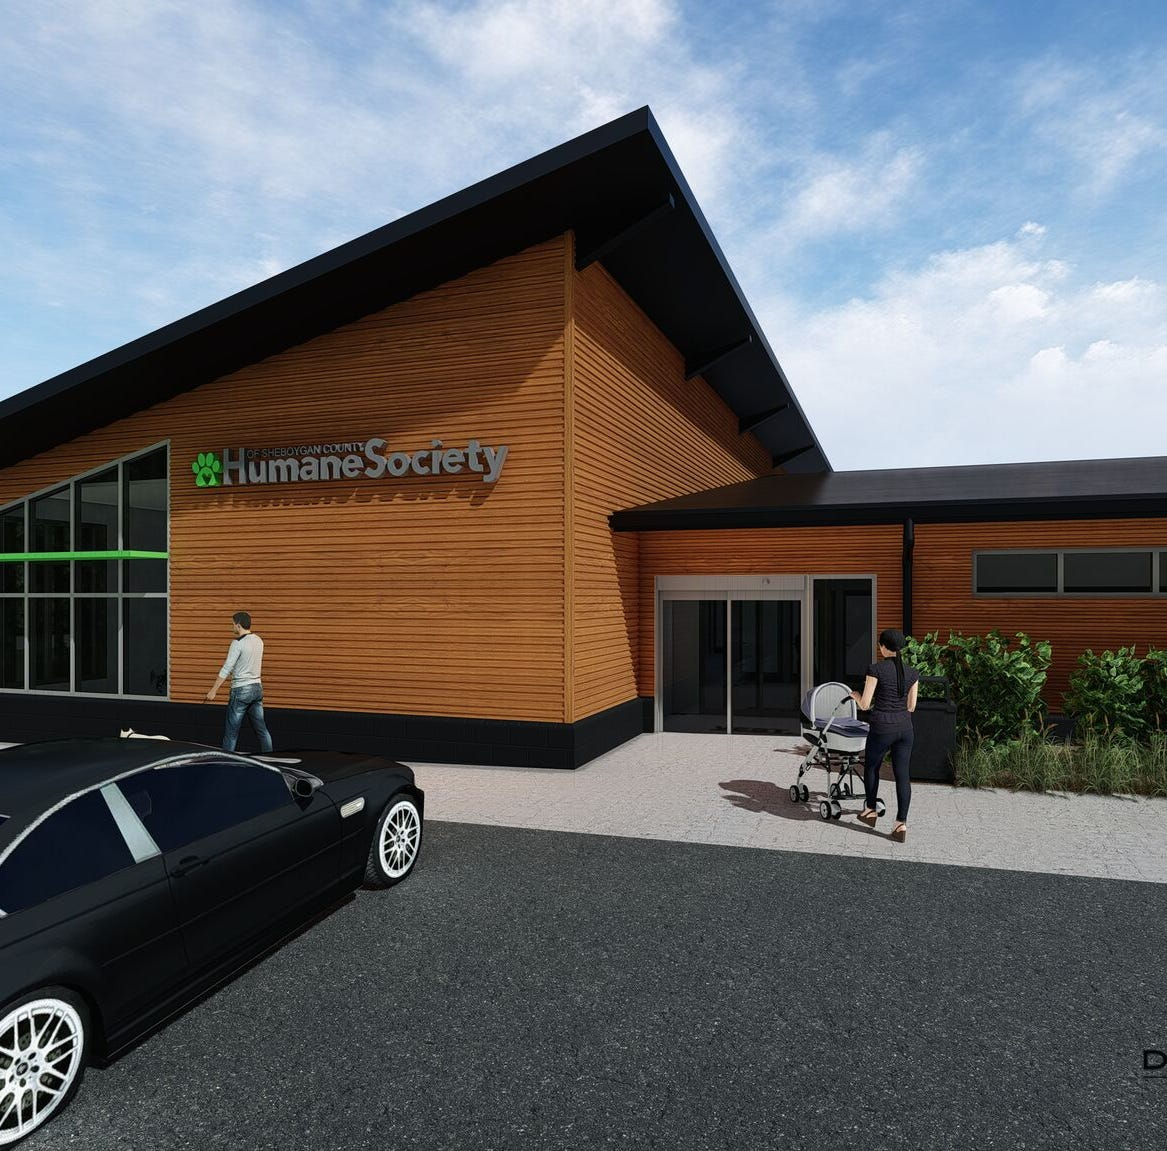 Humane Society of Sheboygan County aims to build new shelter by May 2020